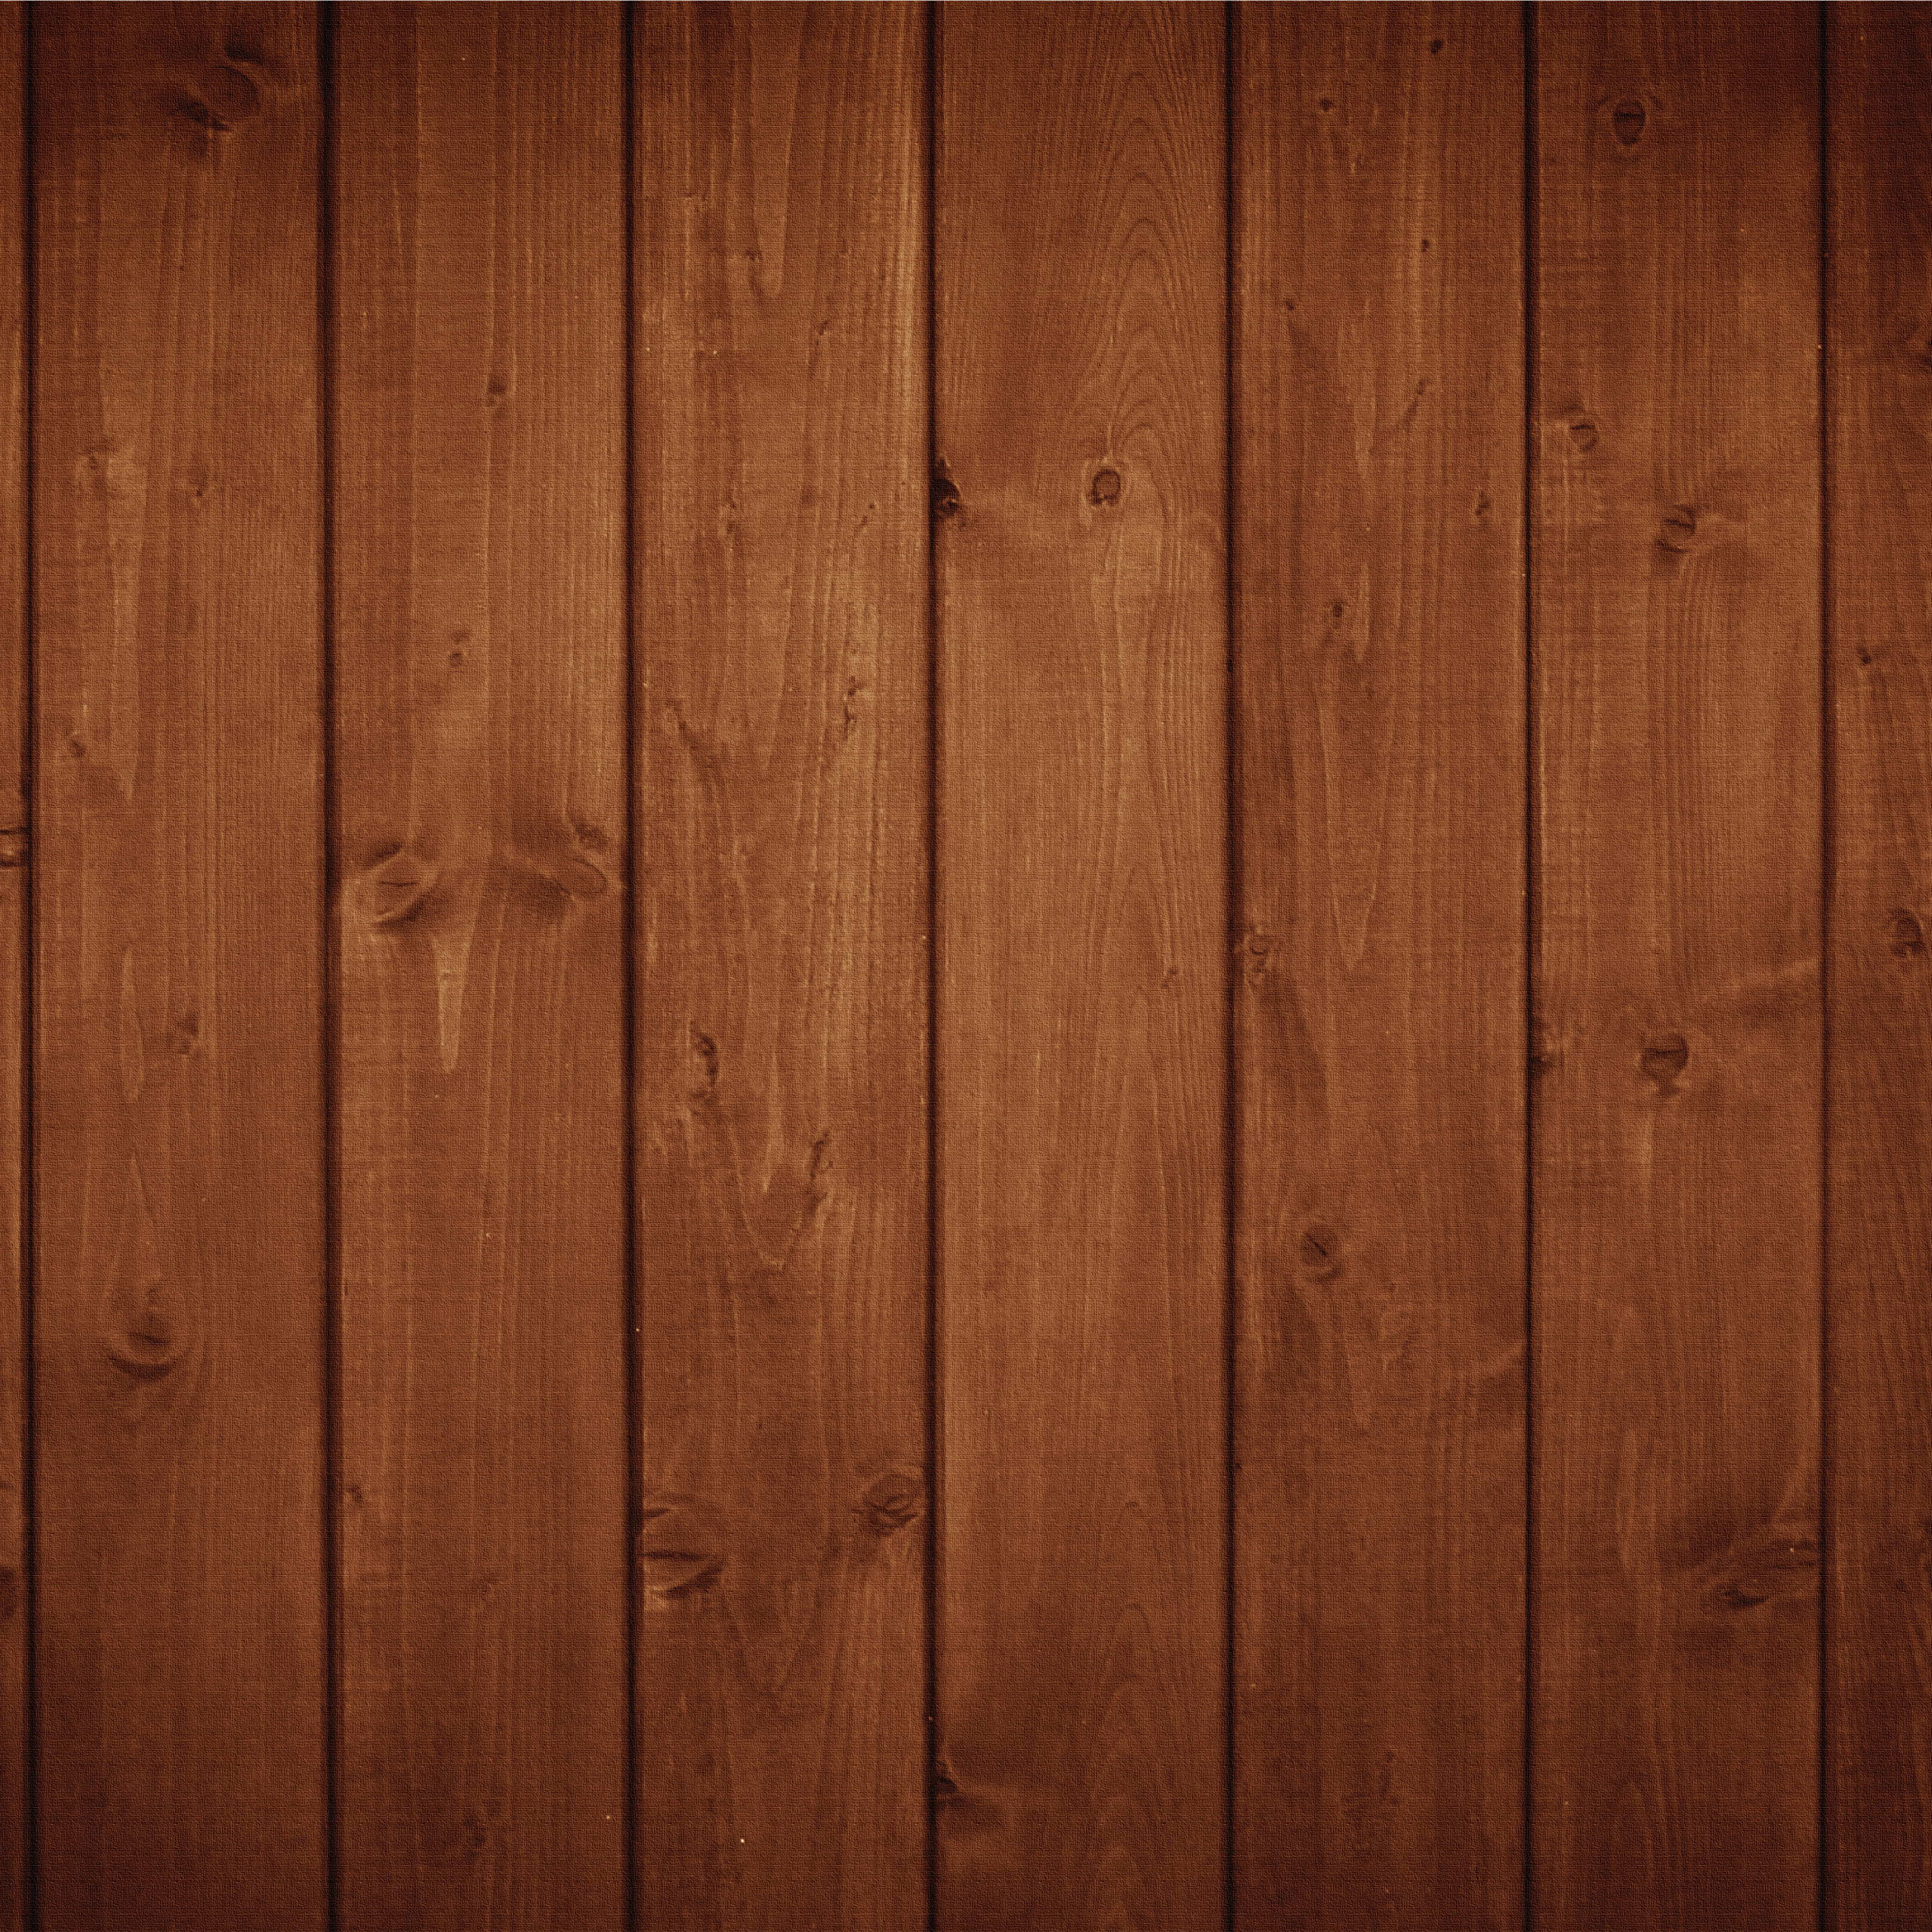 Wood background wallpaper download photo background for Home wallpaper wood